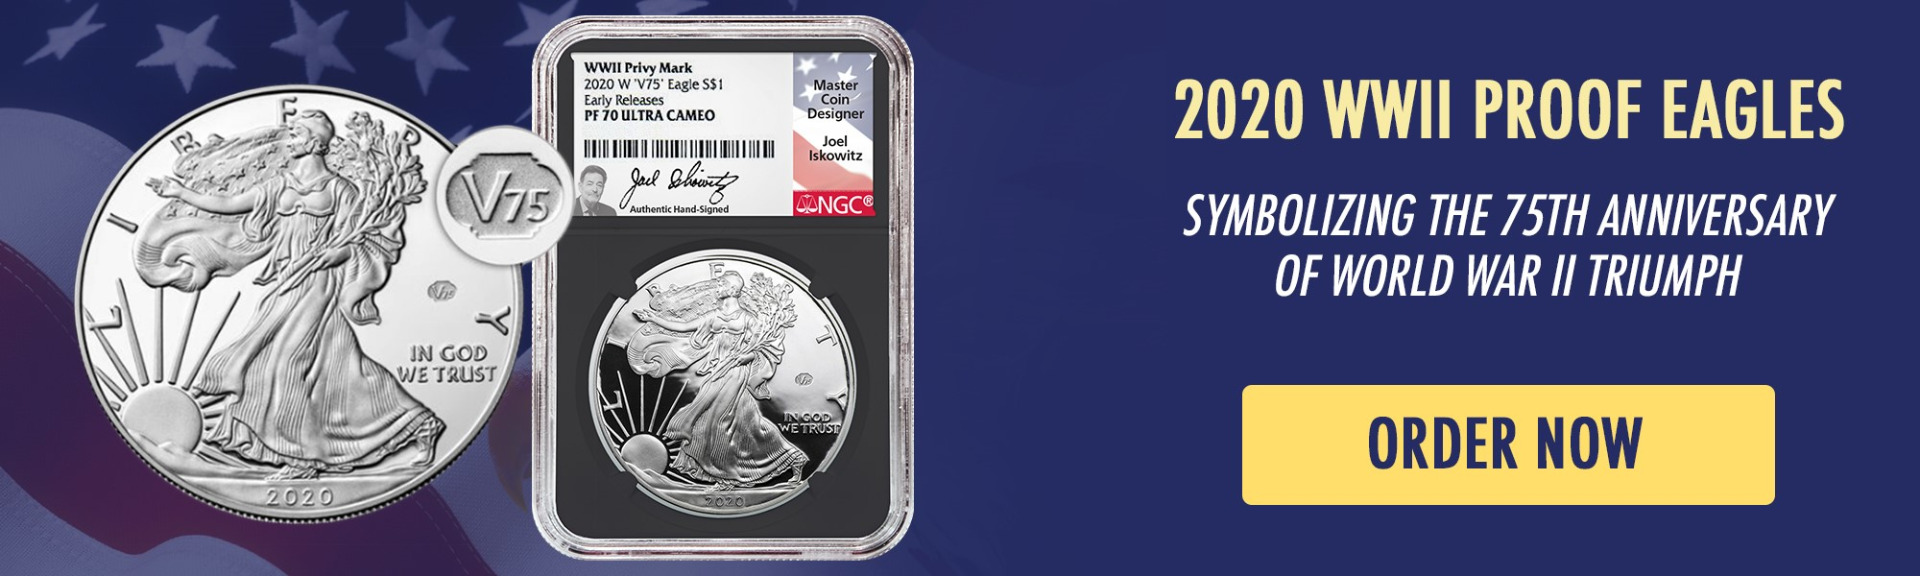 2020 WWII 75th Anniversary Proof Silver Eagles